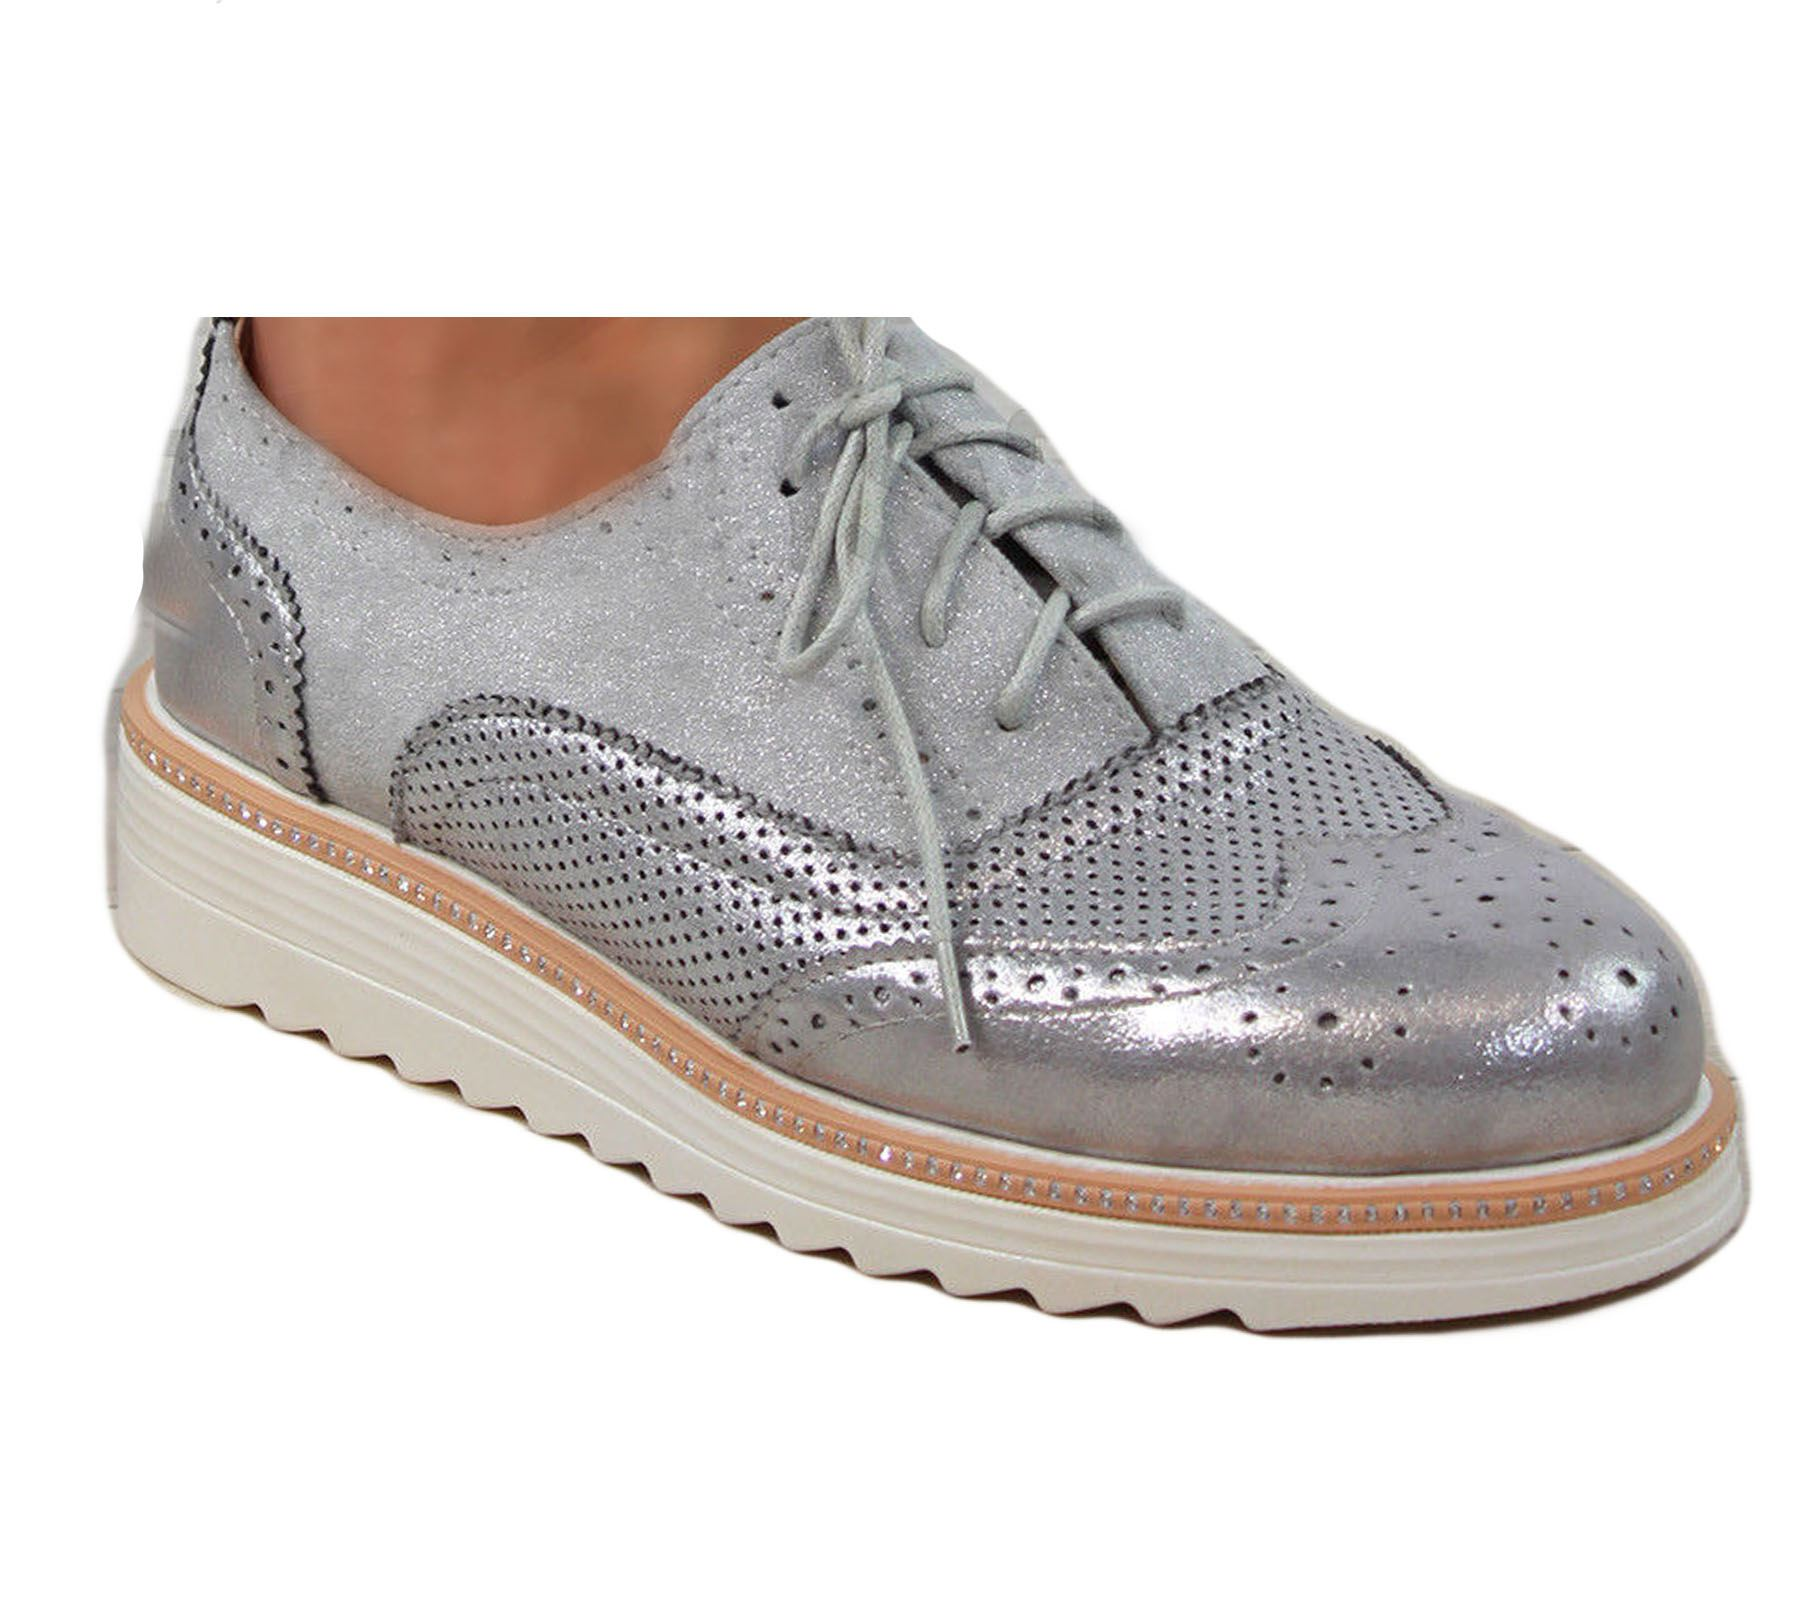 Ladies-Brogue-Lace-Up-Shoes-Womens-Oxford-Smart-Office-Loafers-Shoes miniatura 24